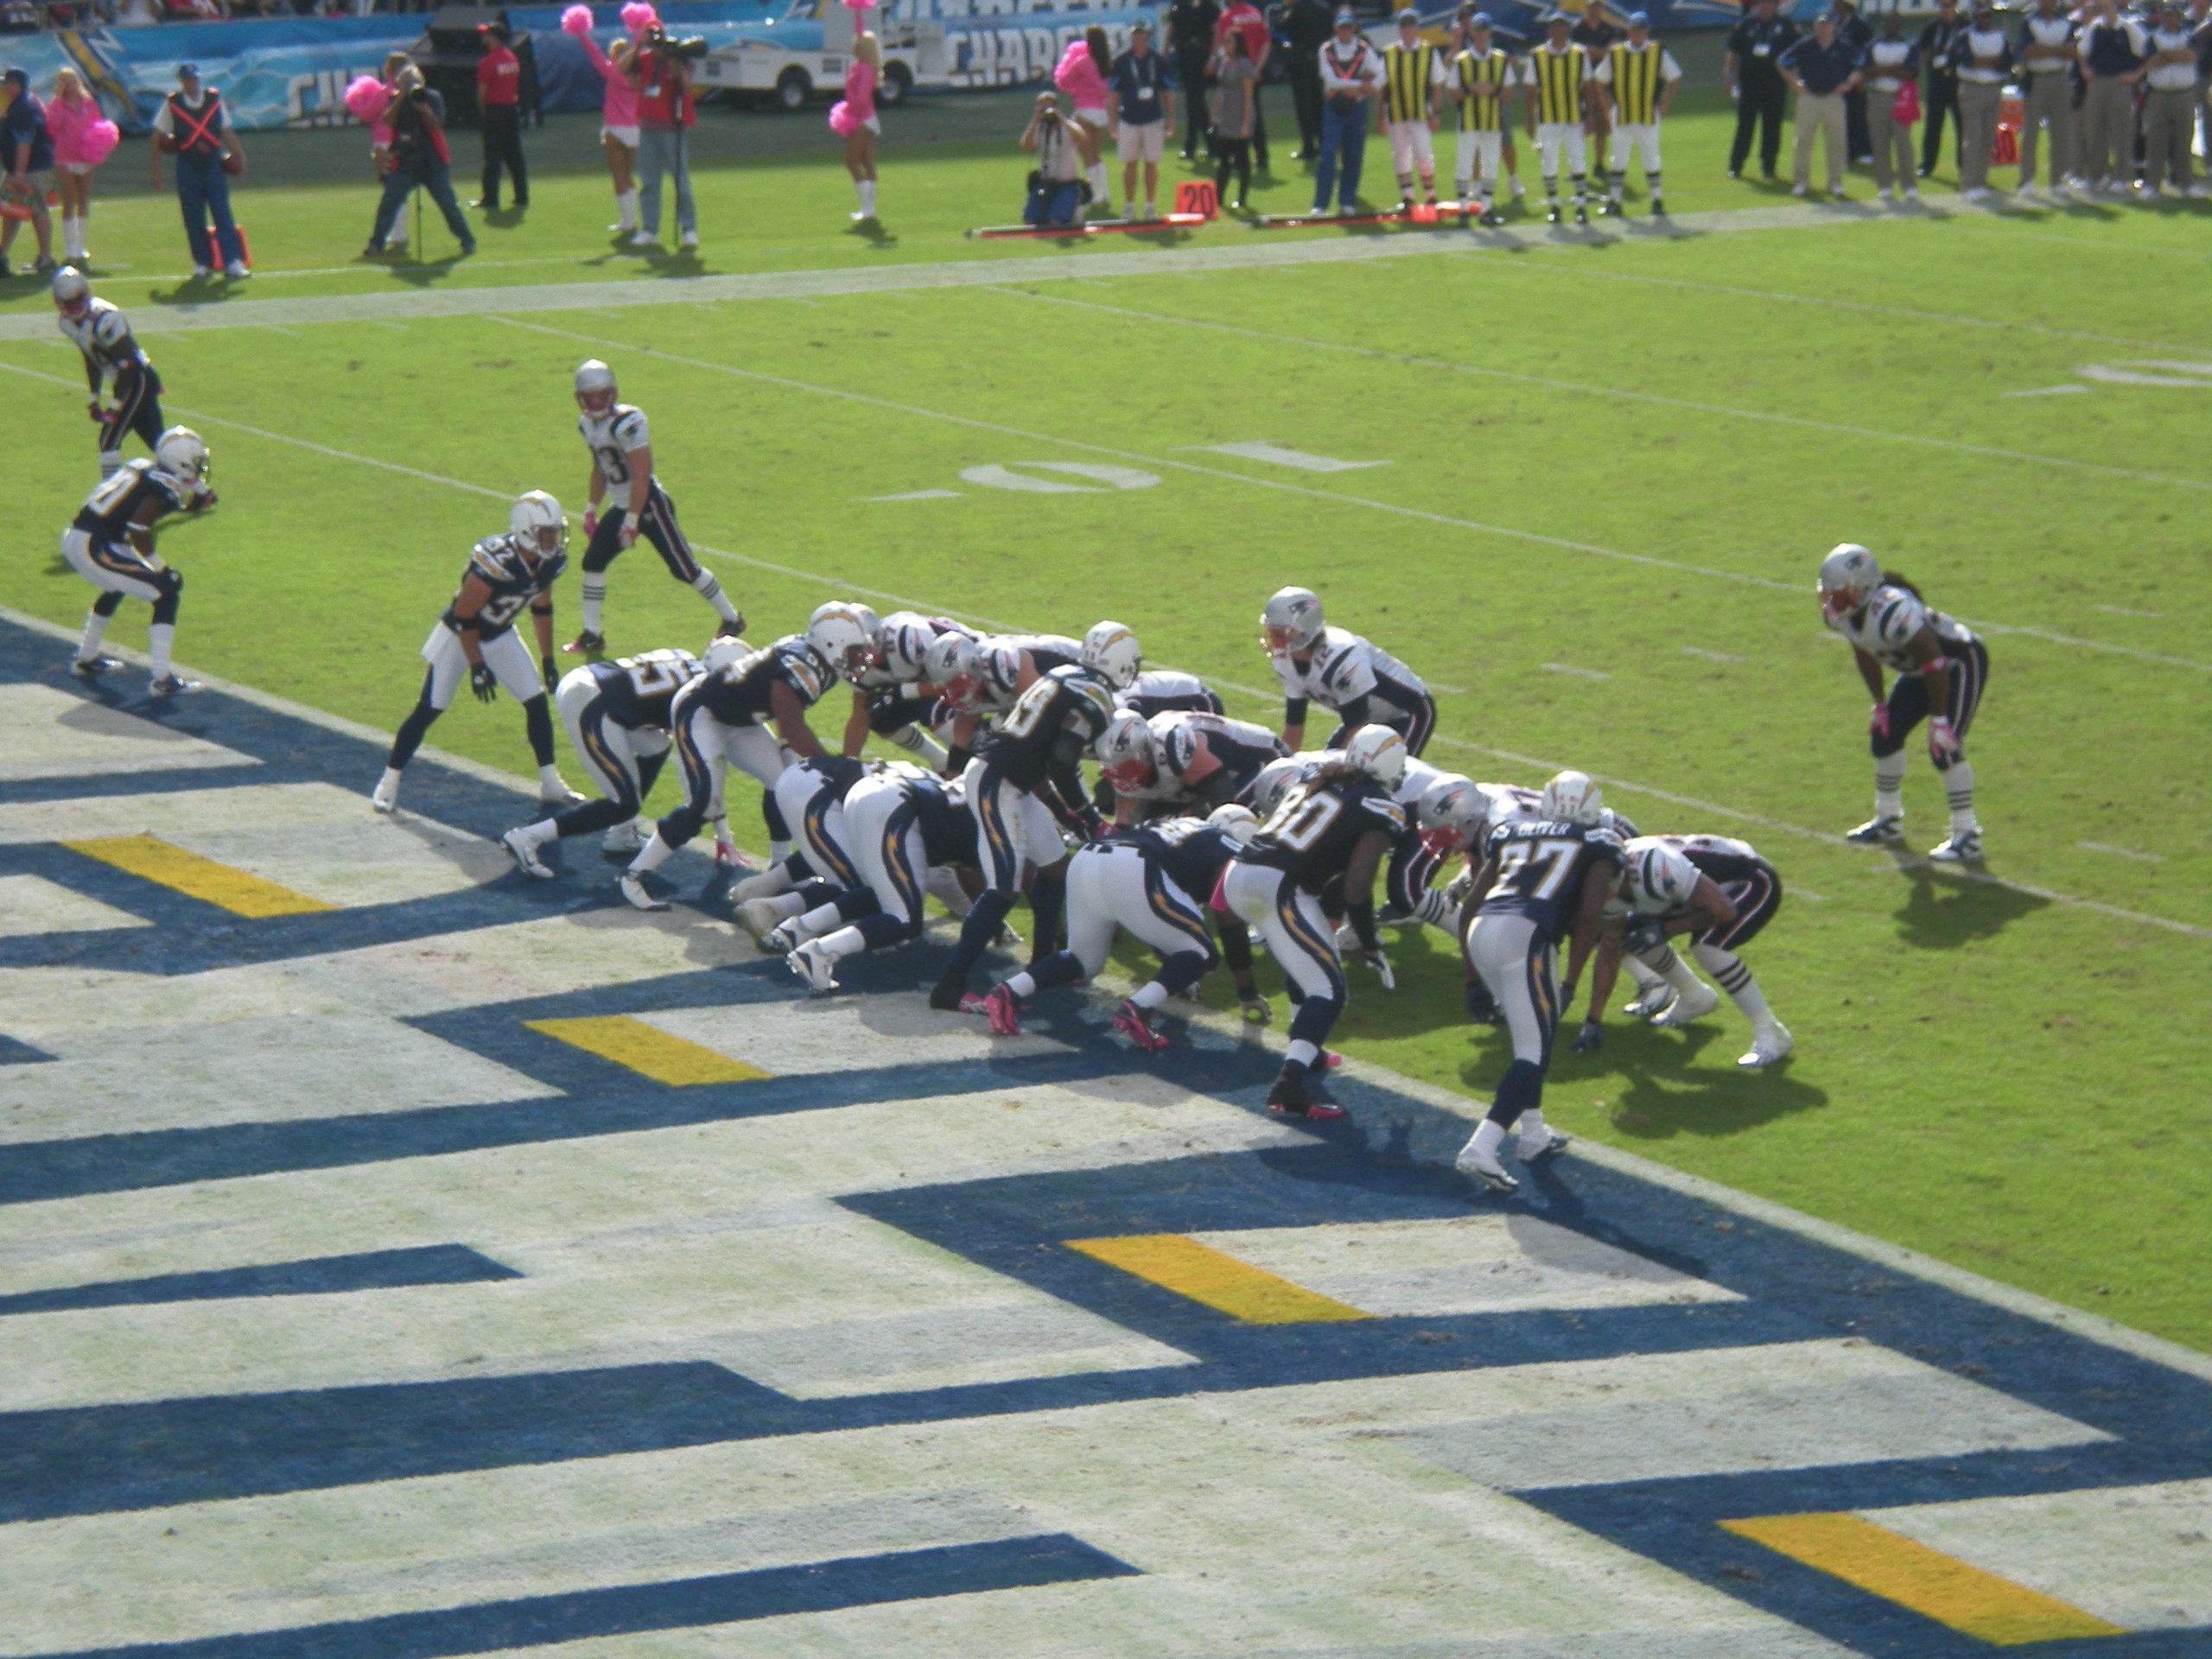 San diego chargers images lets go d hd wallpaper and background san diego chargers images lets go d hd wallpaper and background photos voltagebd Images